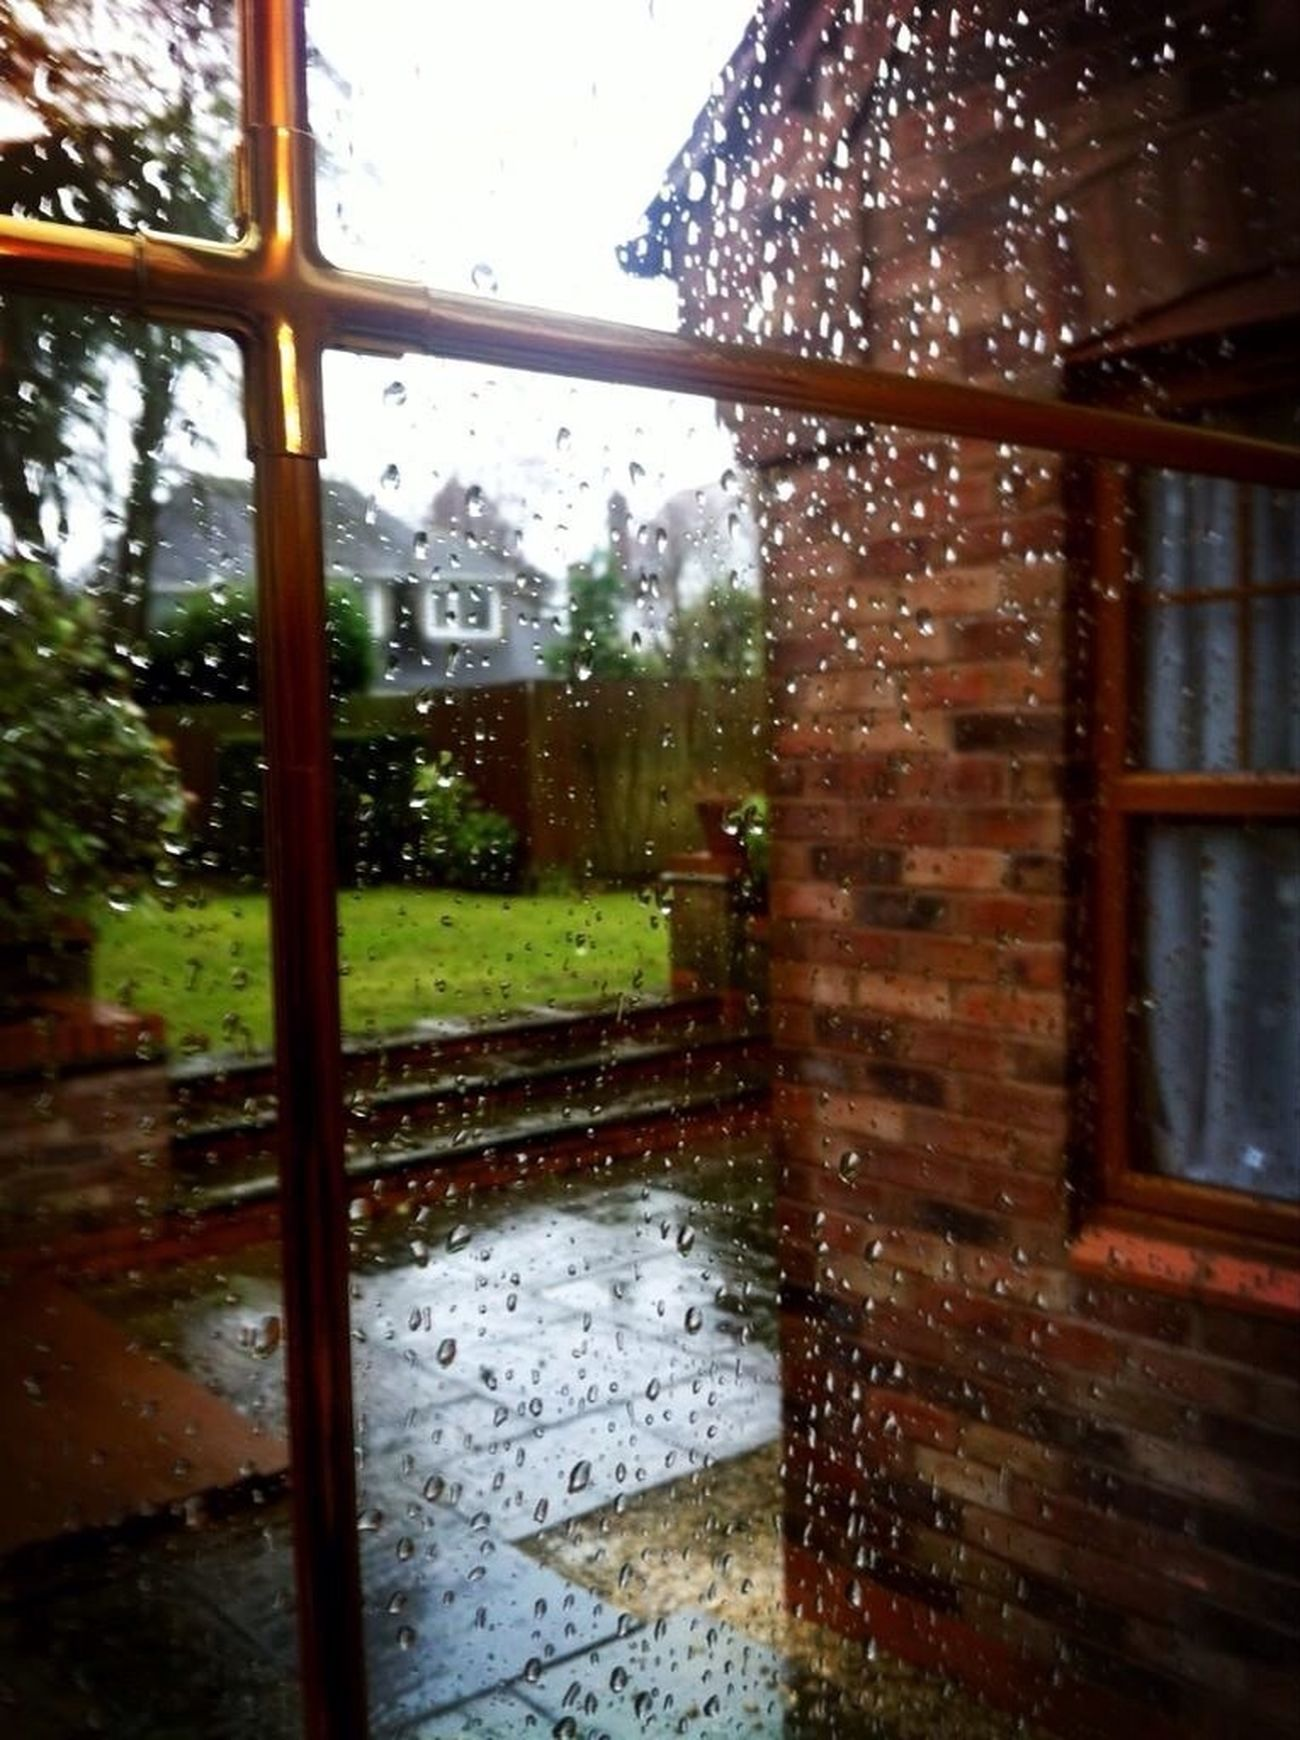 England, always raining.